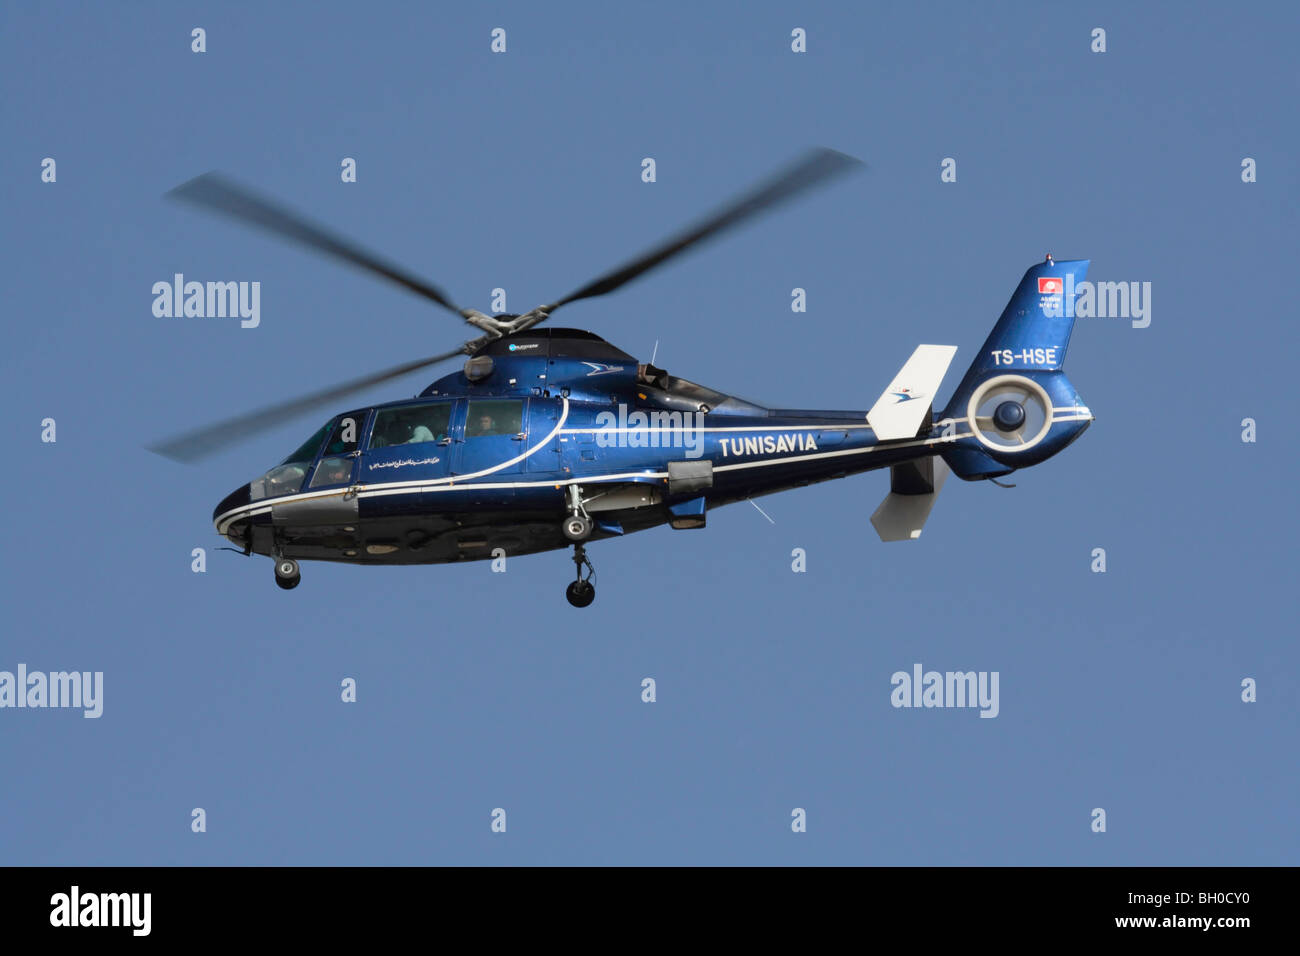 Eurocopter AS365 Dauphin helicopter operated by Tunisavia - Stock Image